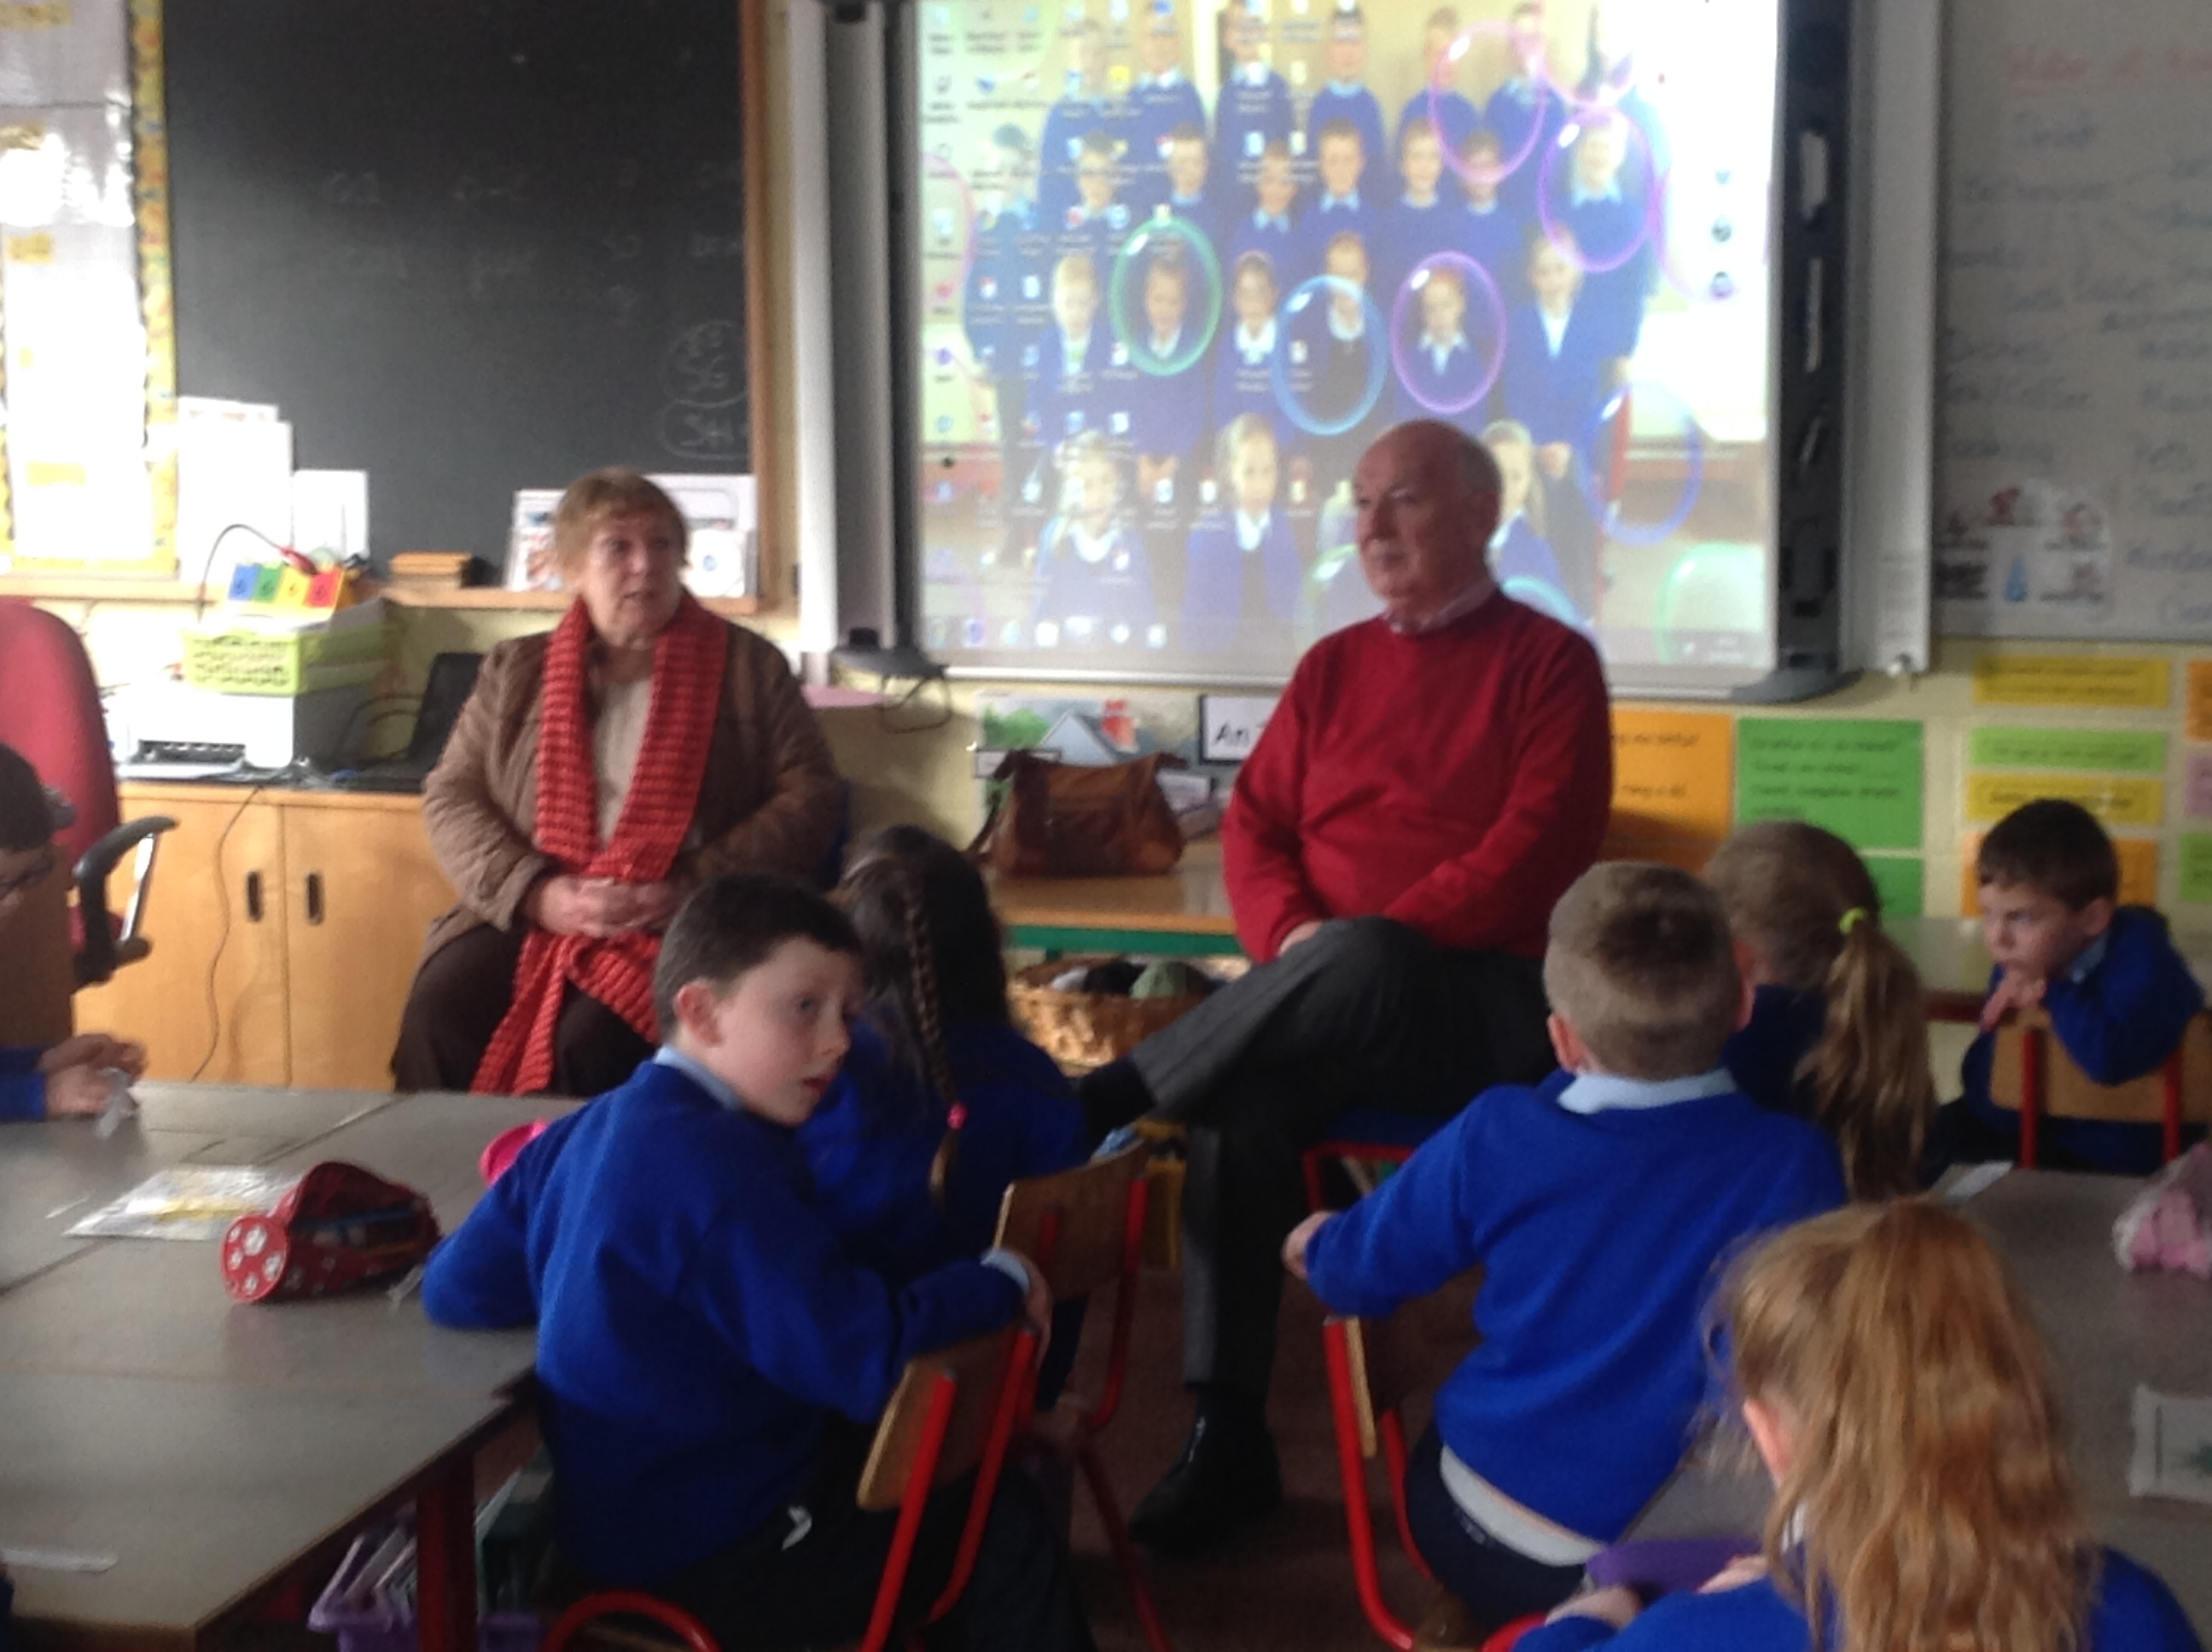 Helen and John talk about their time at school.